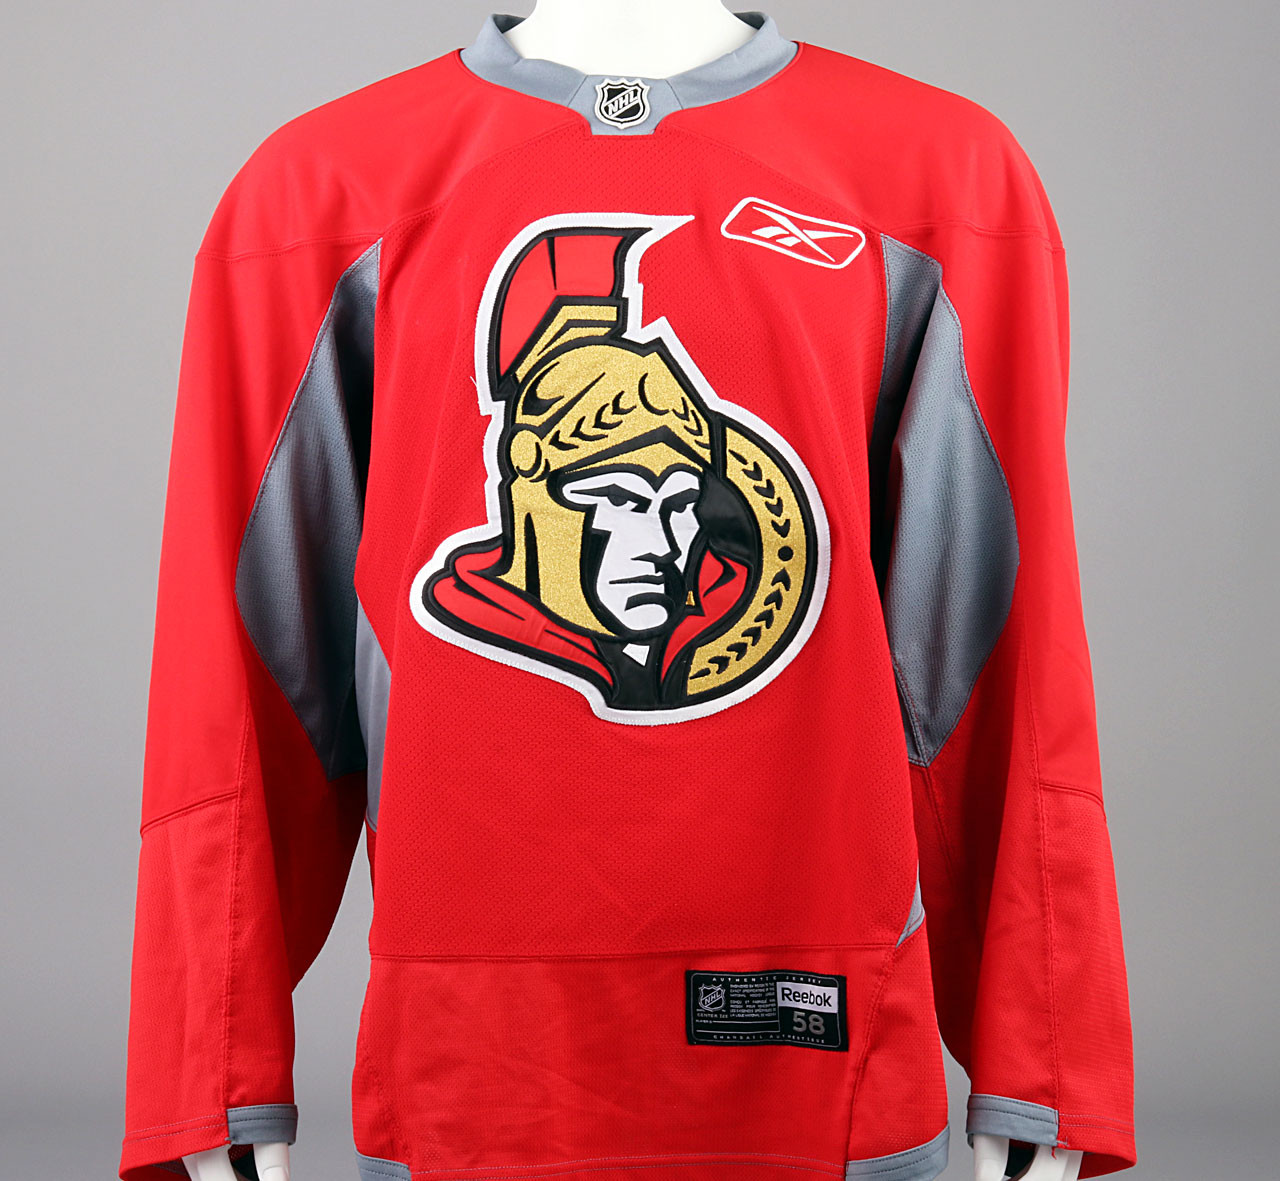 info for 96875 00461 Practice Jersey - Ottawa Senators - Red Reebok Size 58